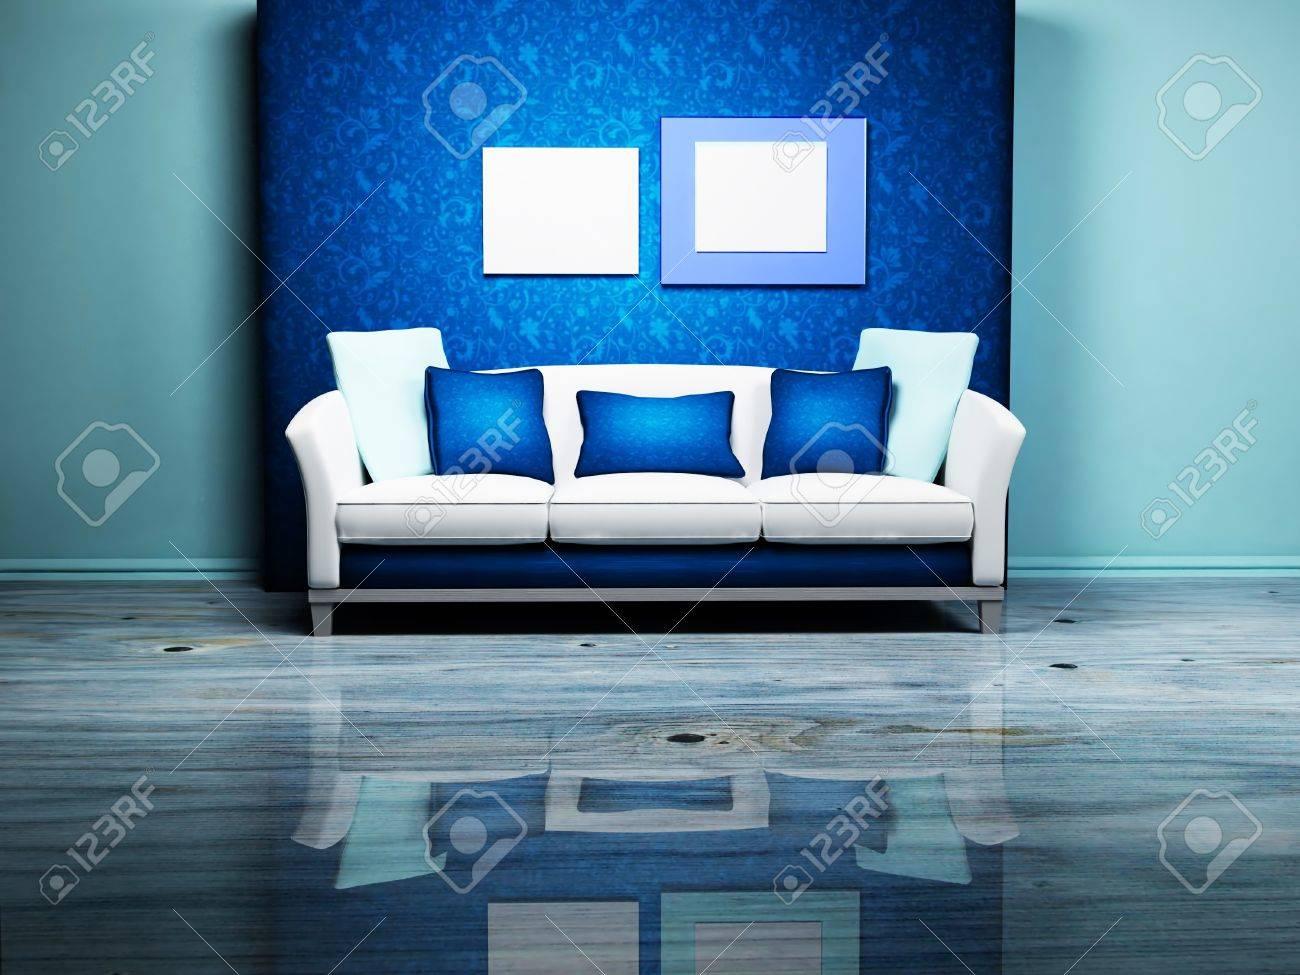 Nice Sofa modern interior design with a nice sofa and the pictures on